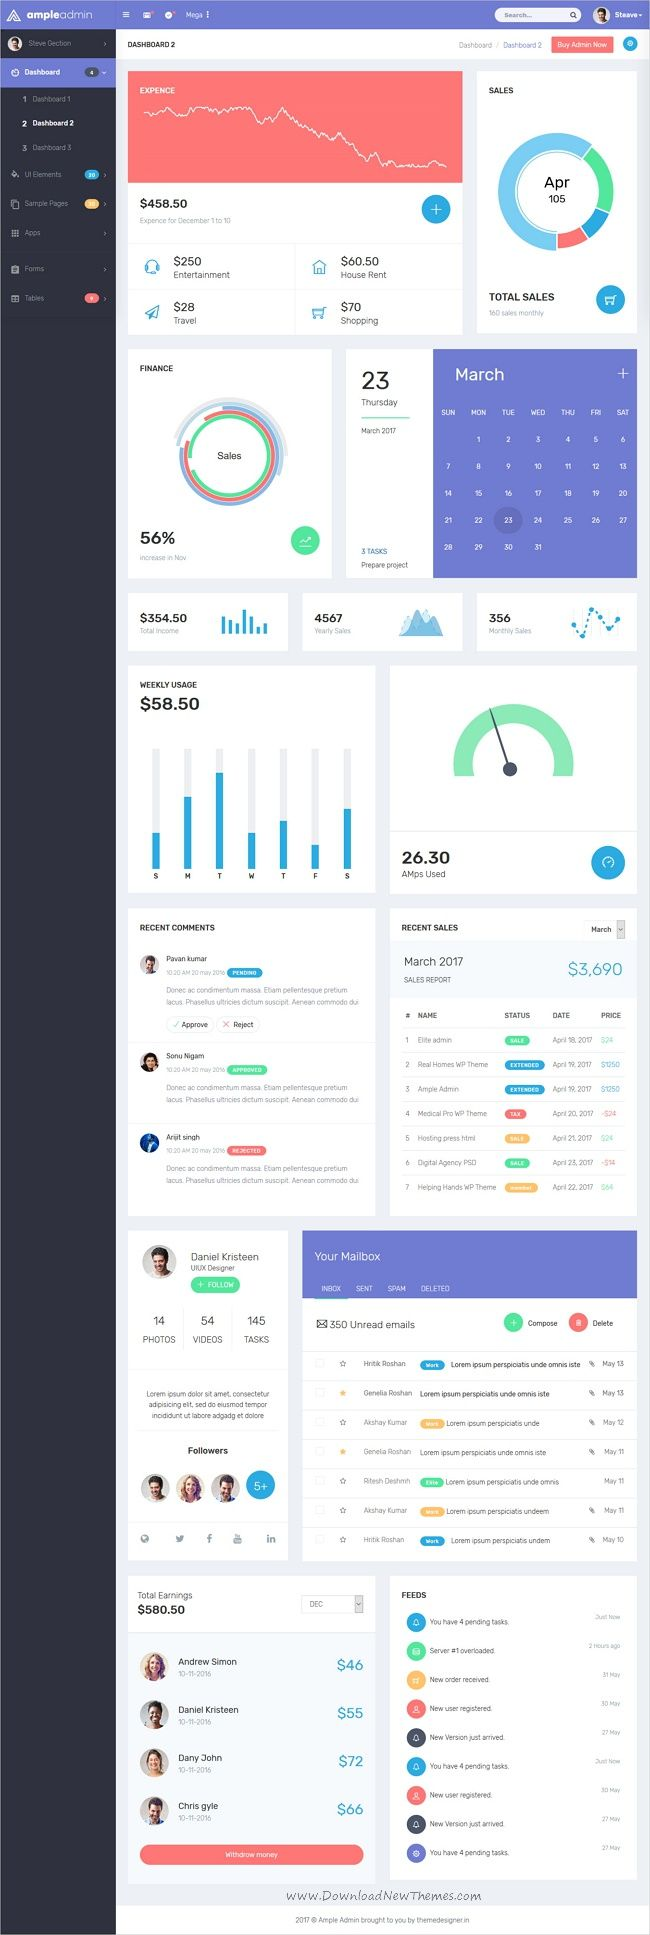 Ample Admin is a popular open source WebApp template for admin dashboards and control panels based on CSS, Bootstrap framework with 7 unique homepage layouts download now➩ https://wrapbootstrap.com/theme/ample-admin-dashboard-template-WB0RDB1MP?ref=datasata